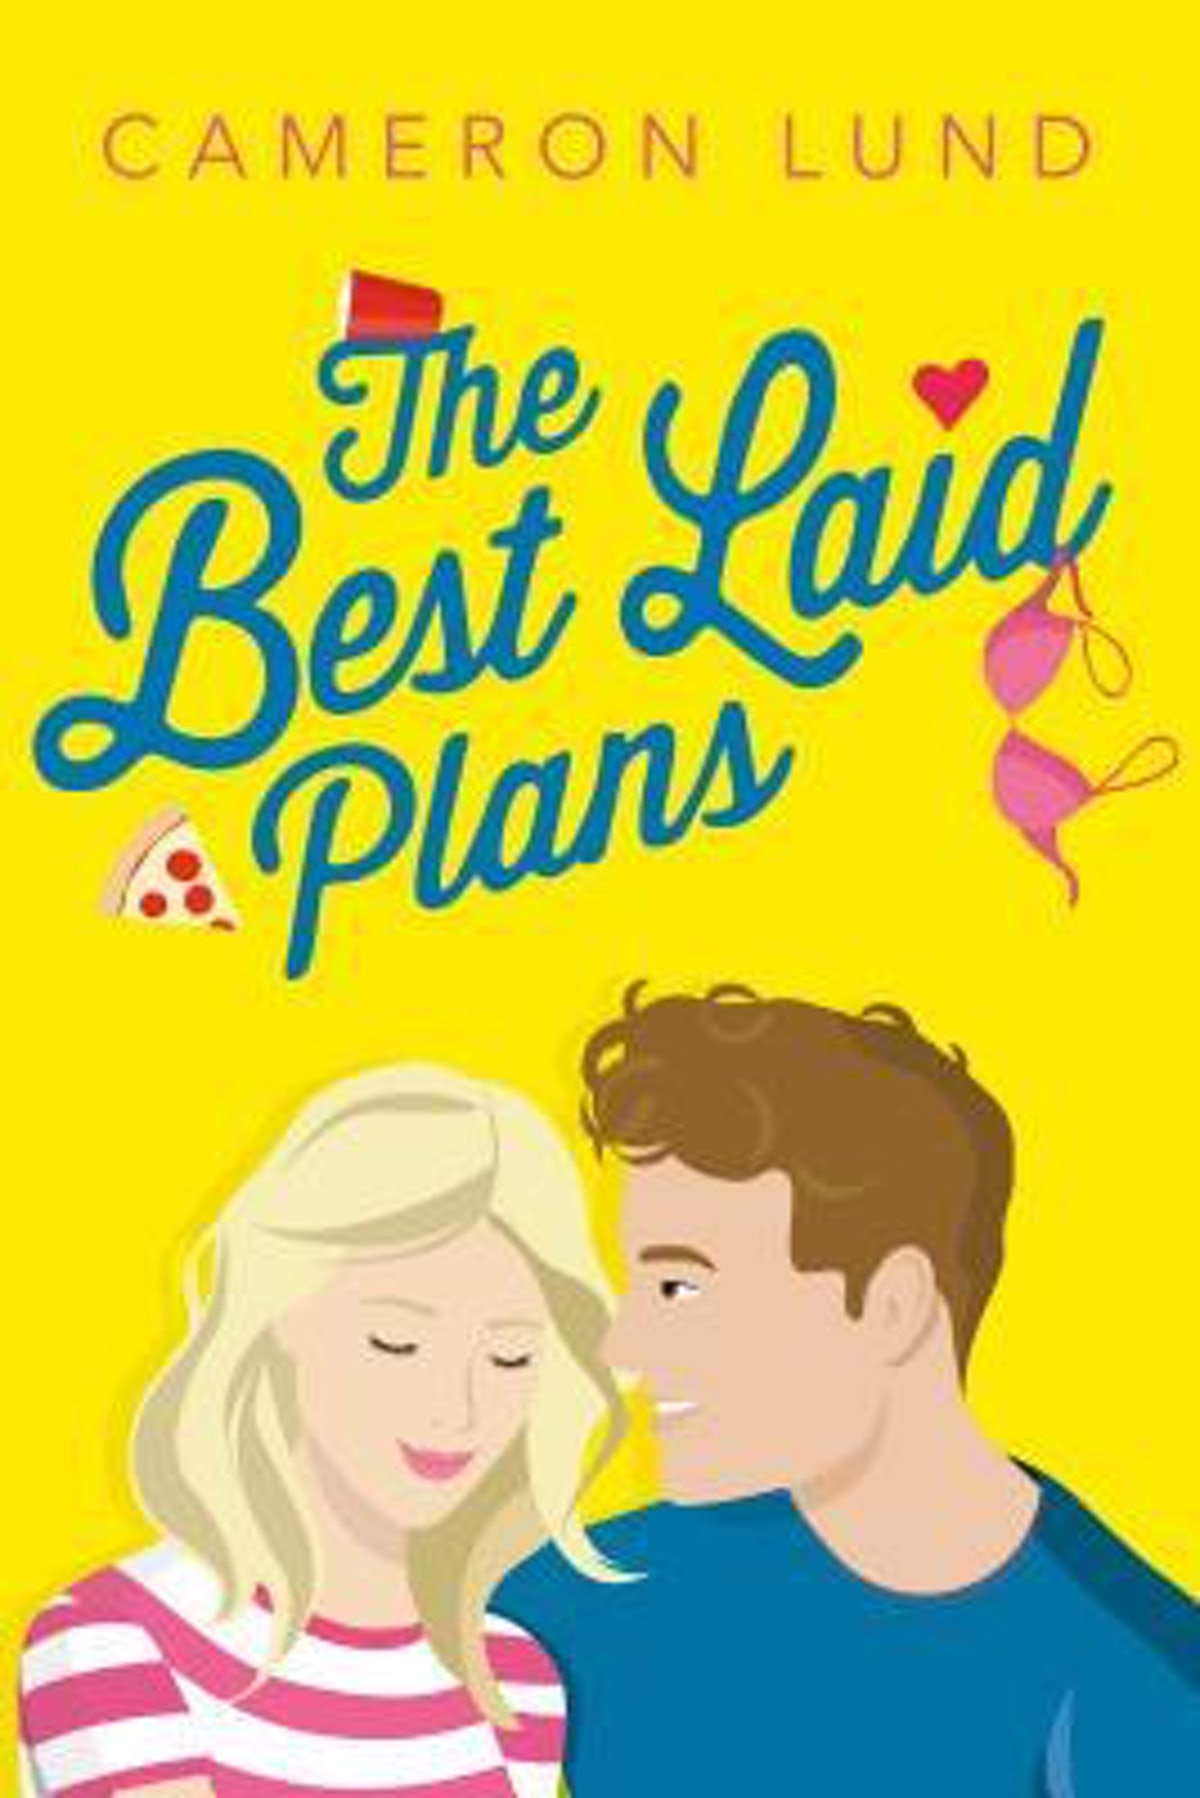 'The Best Laid Plans' by Cameron Lund